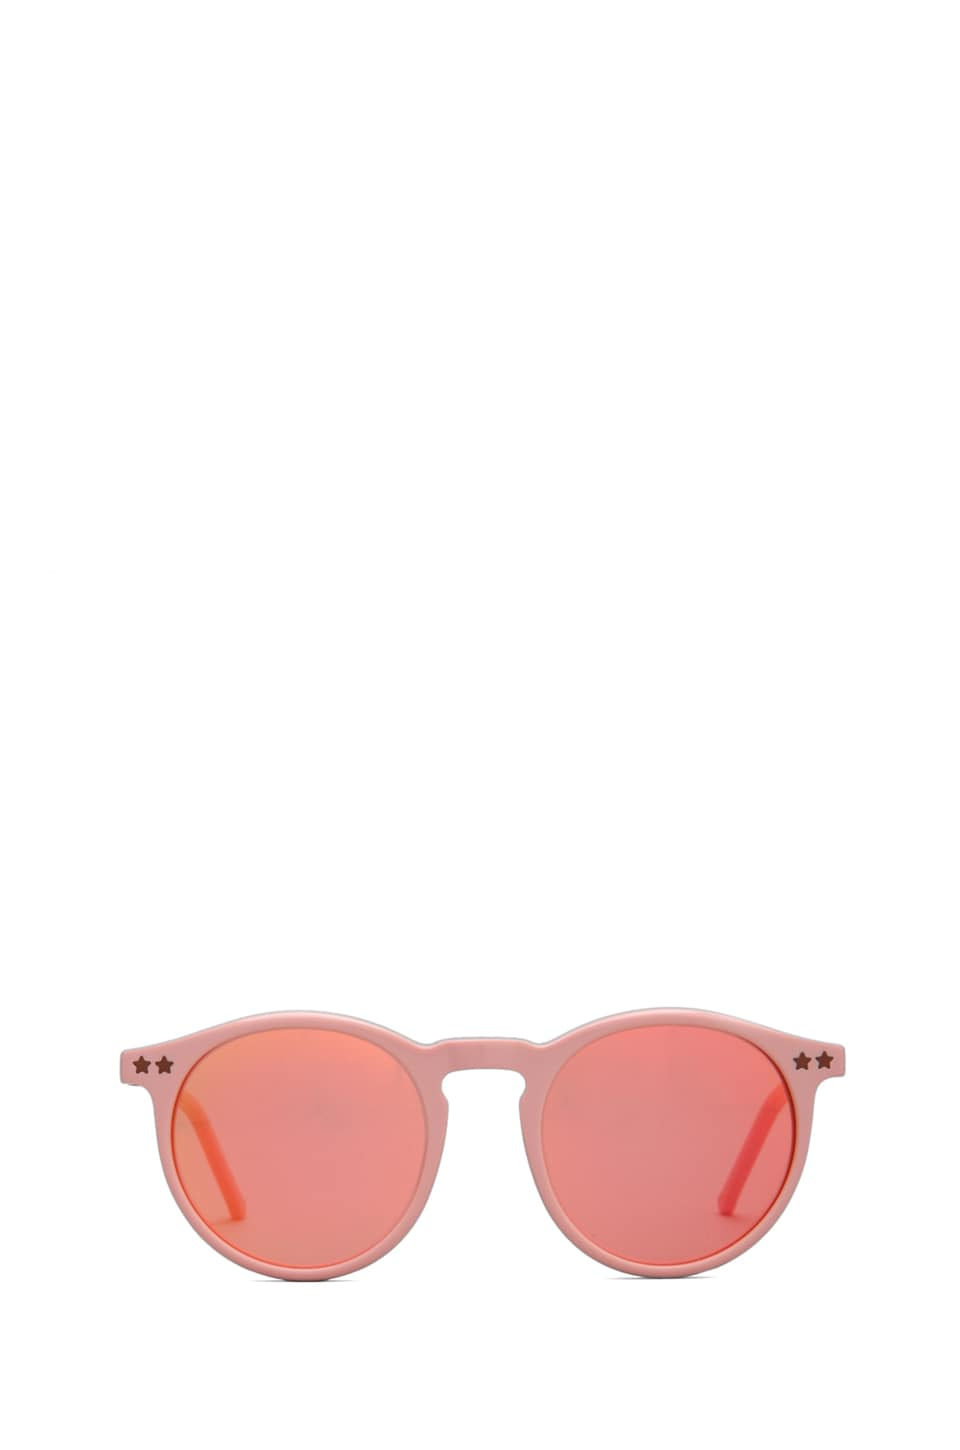 Wildfox Couture Steff Panto Frame Sunglasses in Pink/Pink Mirror